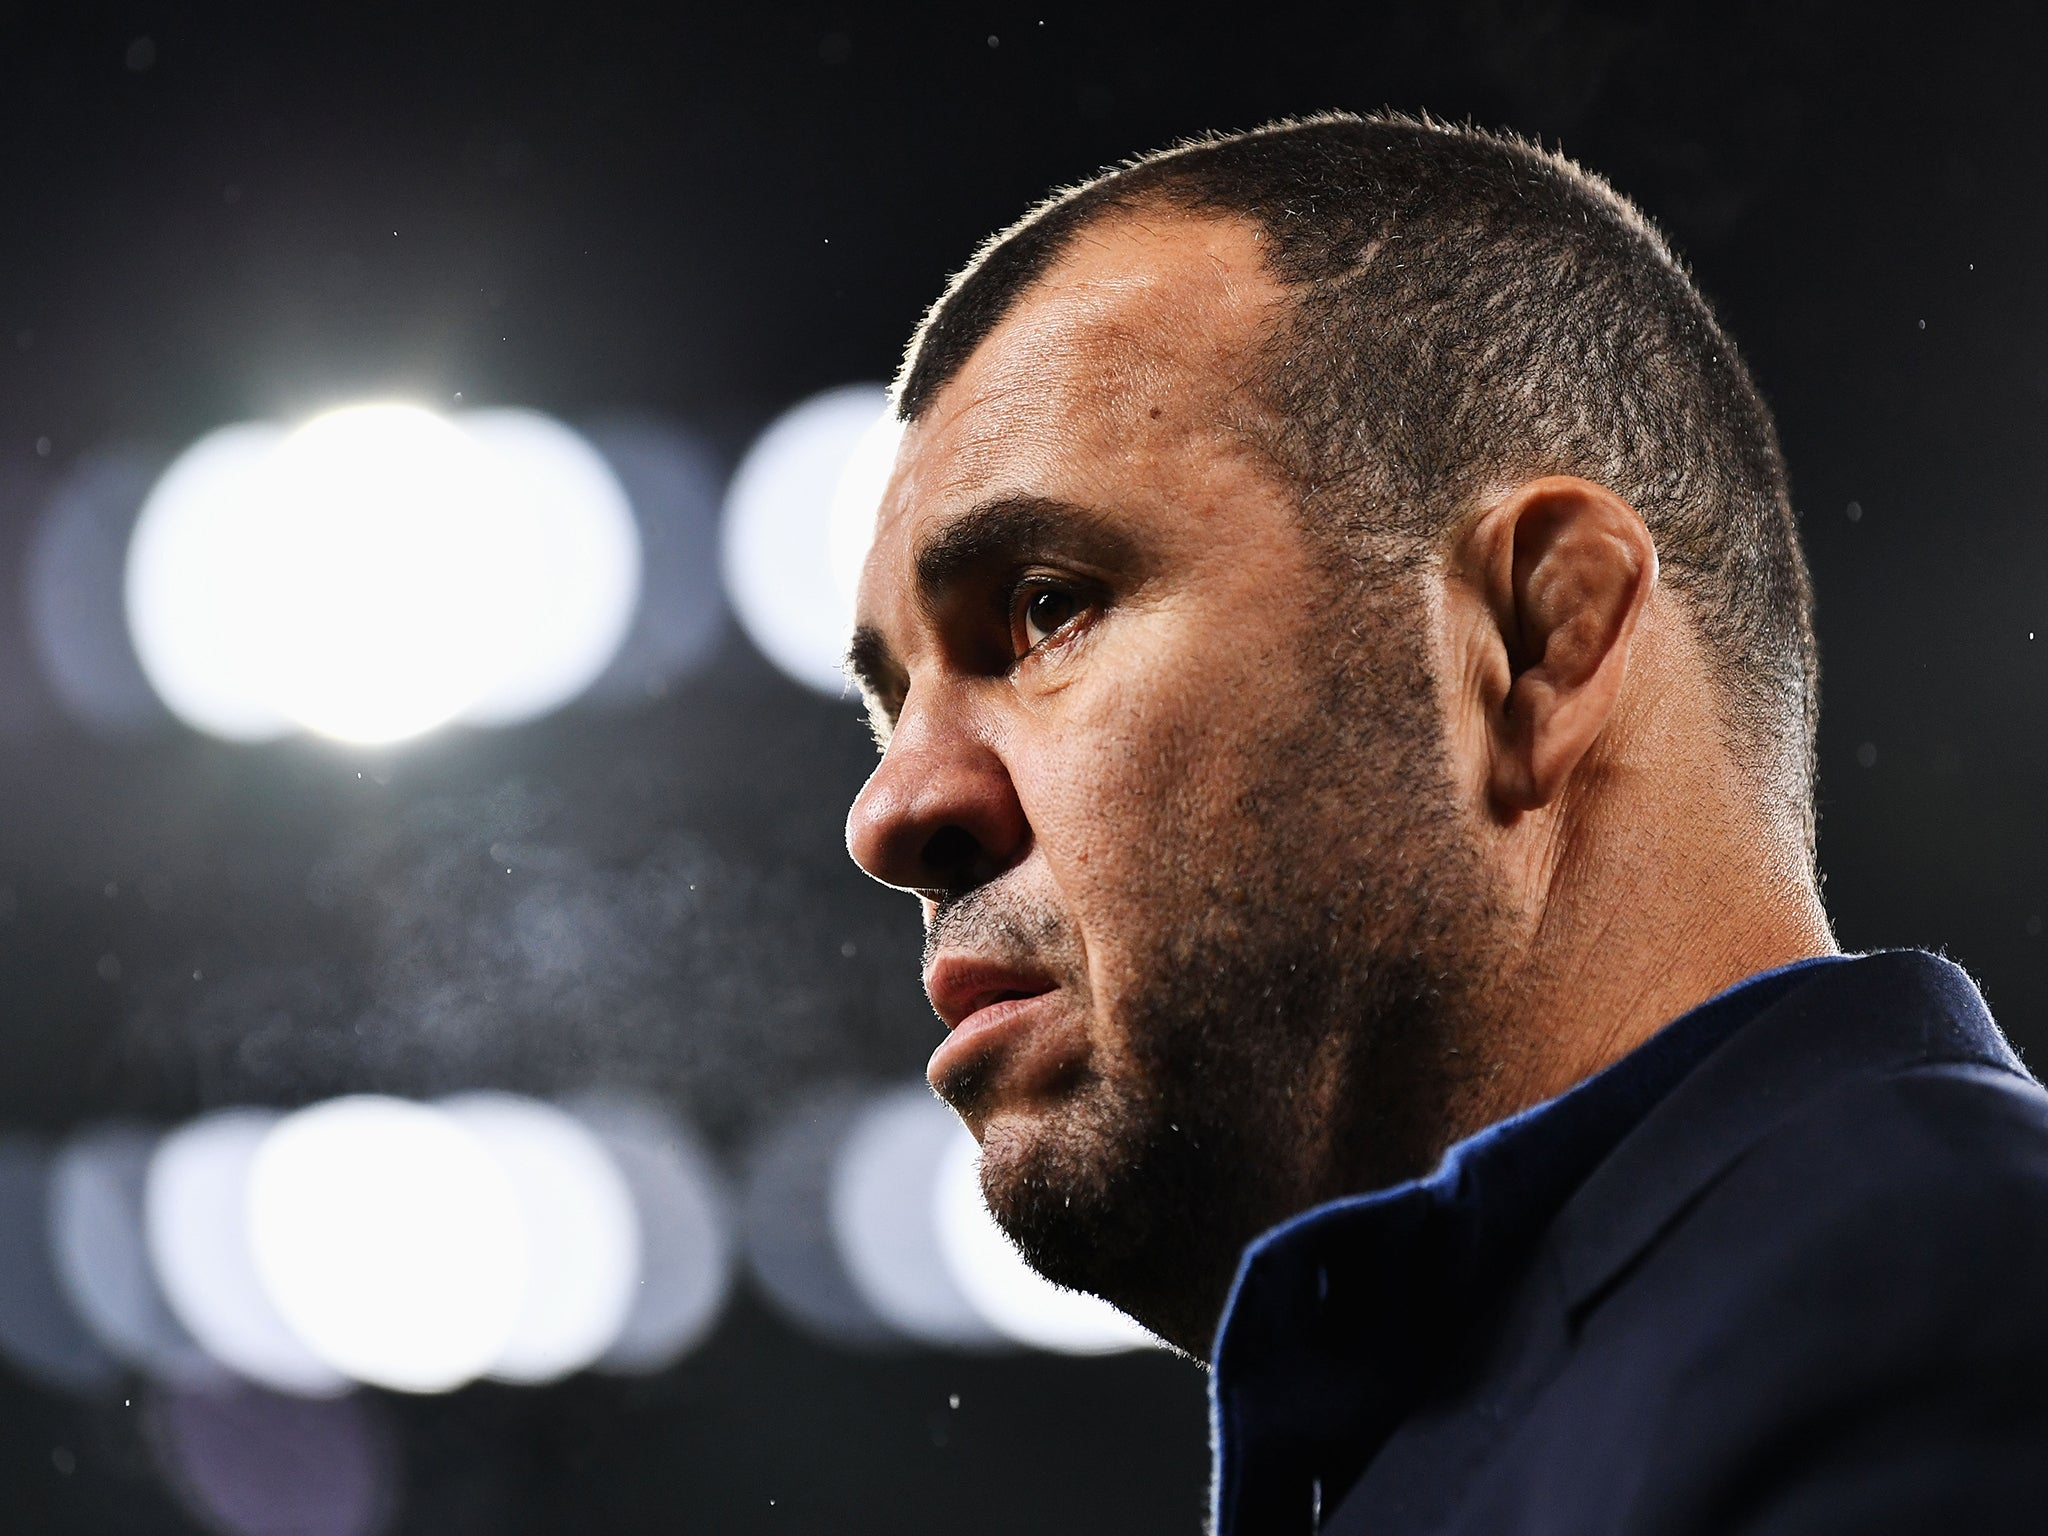 Rugby World Cup 2019: Michael Cheika's Wallabies